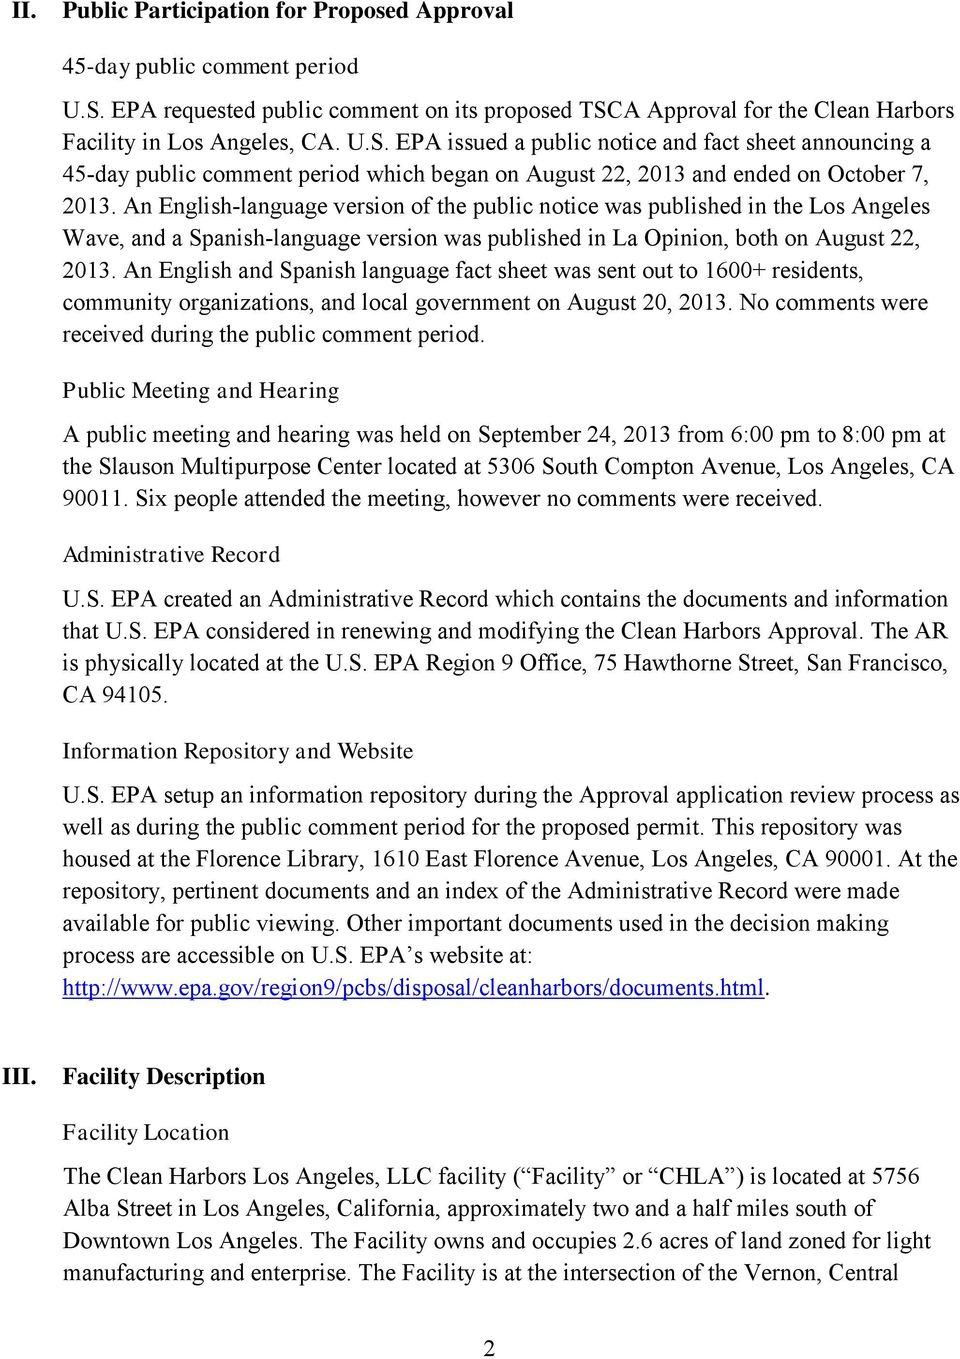 An English-language version of the public notice was published in the Los Angeles Wave, and a Spanish-language version was published in La Opinion, both on August 22, 2013.